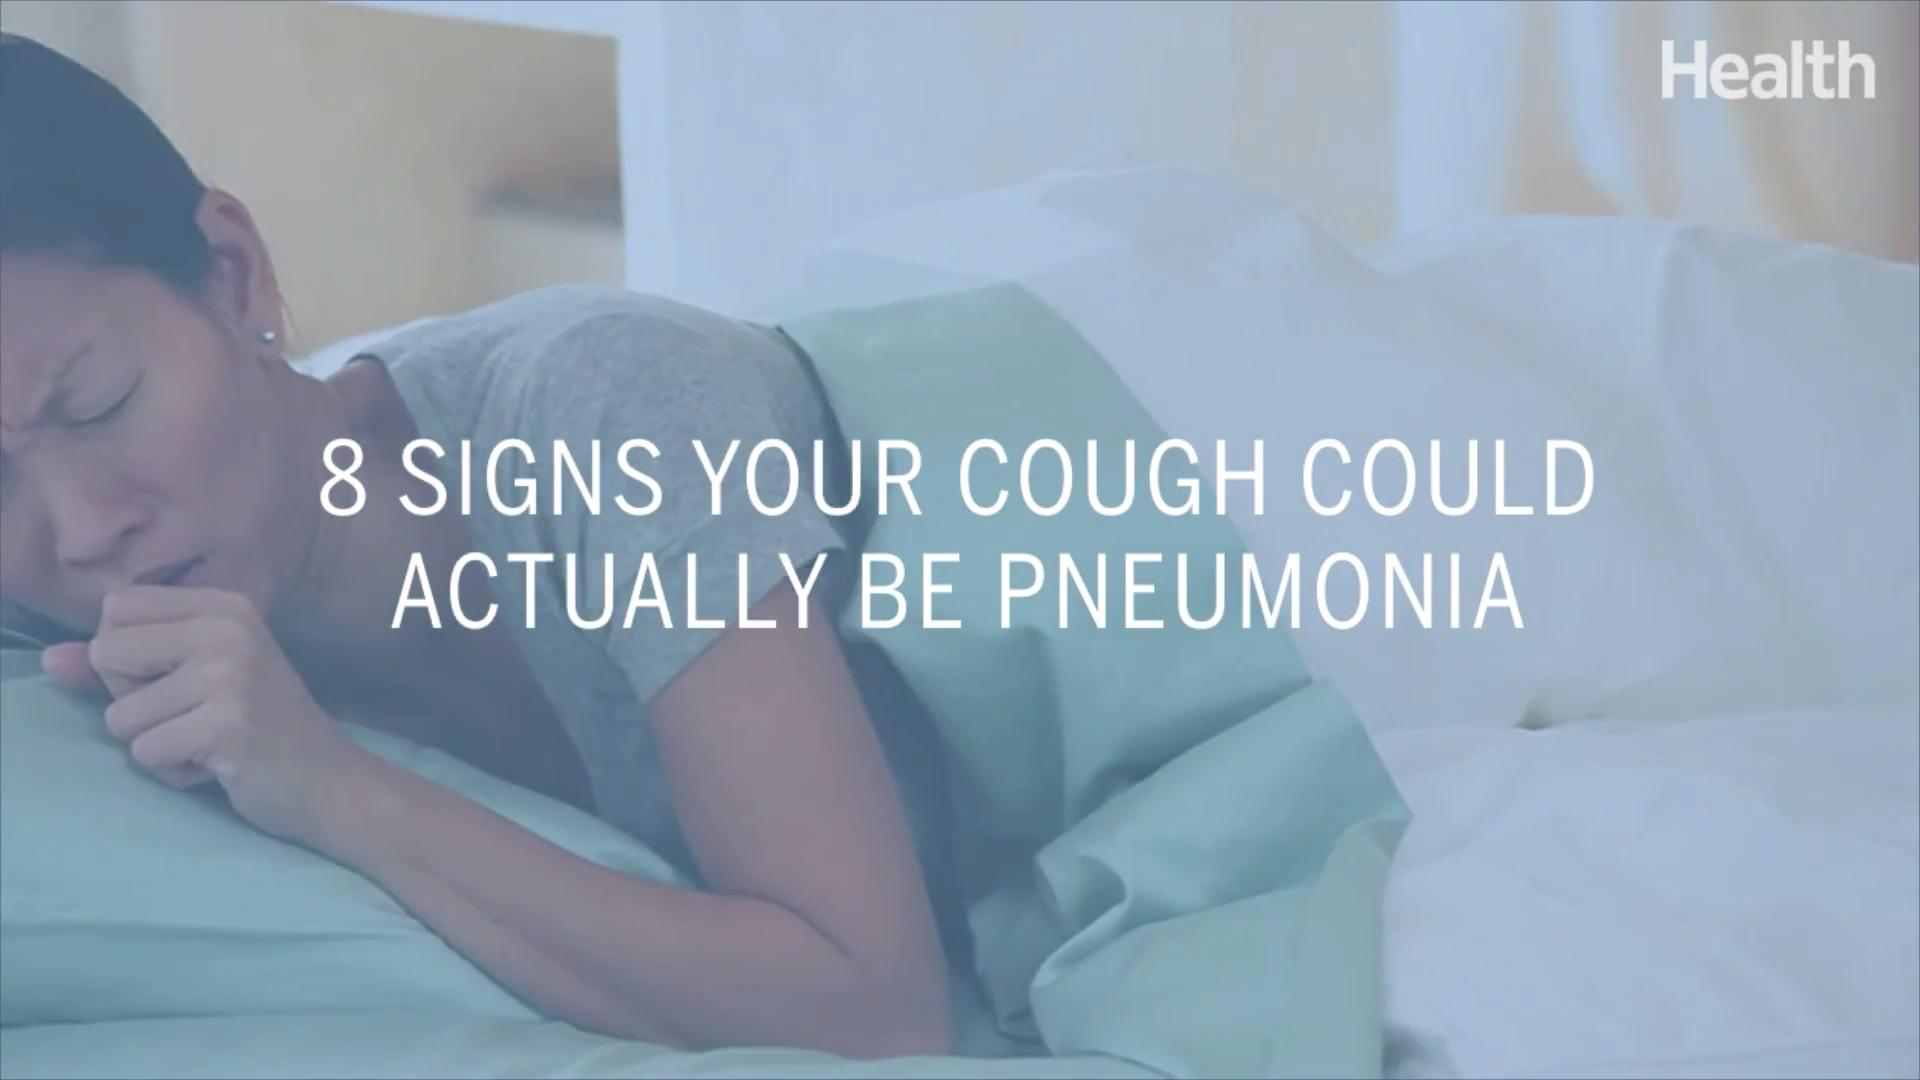 How to Stop Coughing at Night - Health